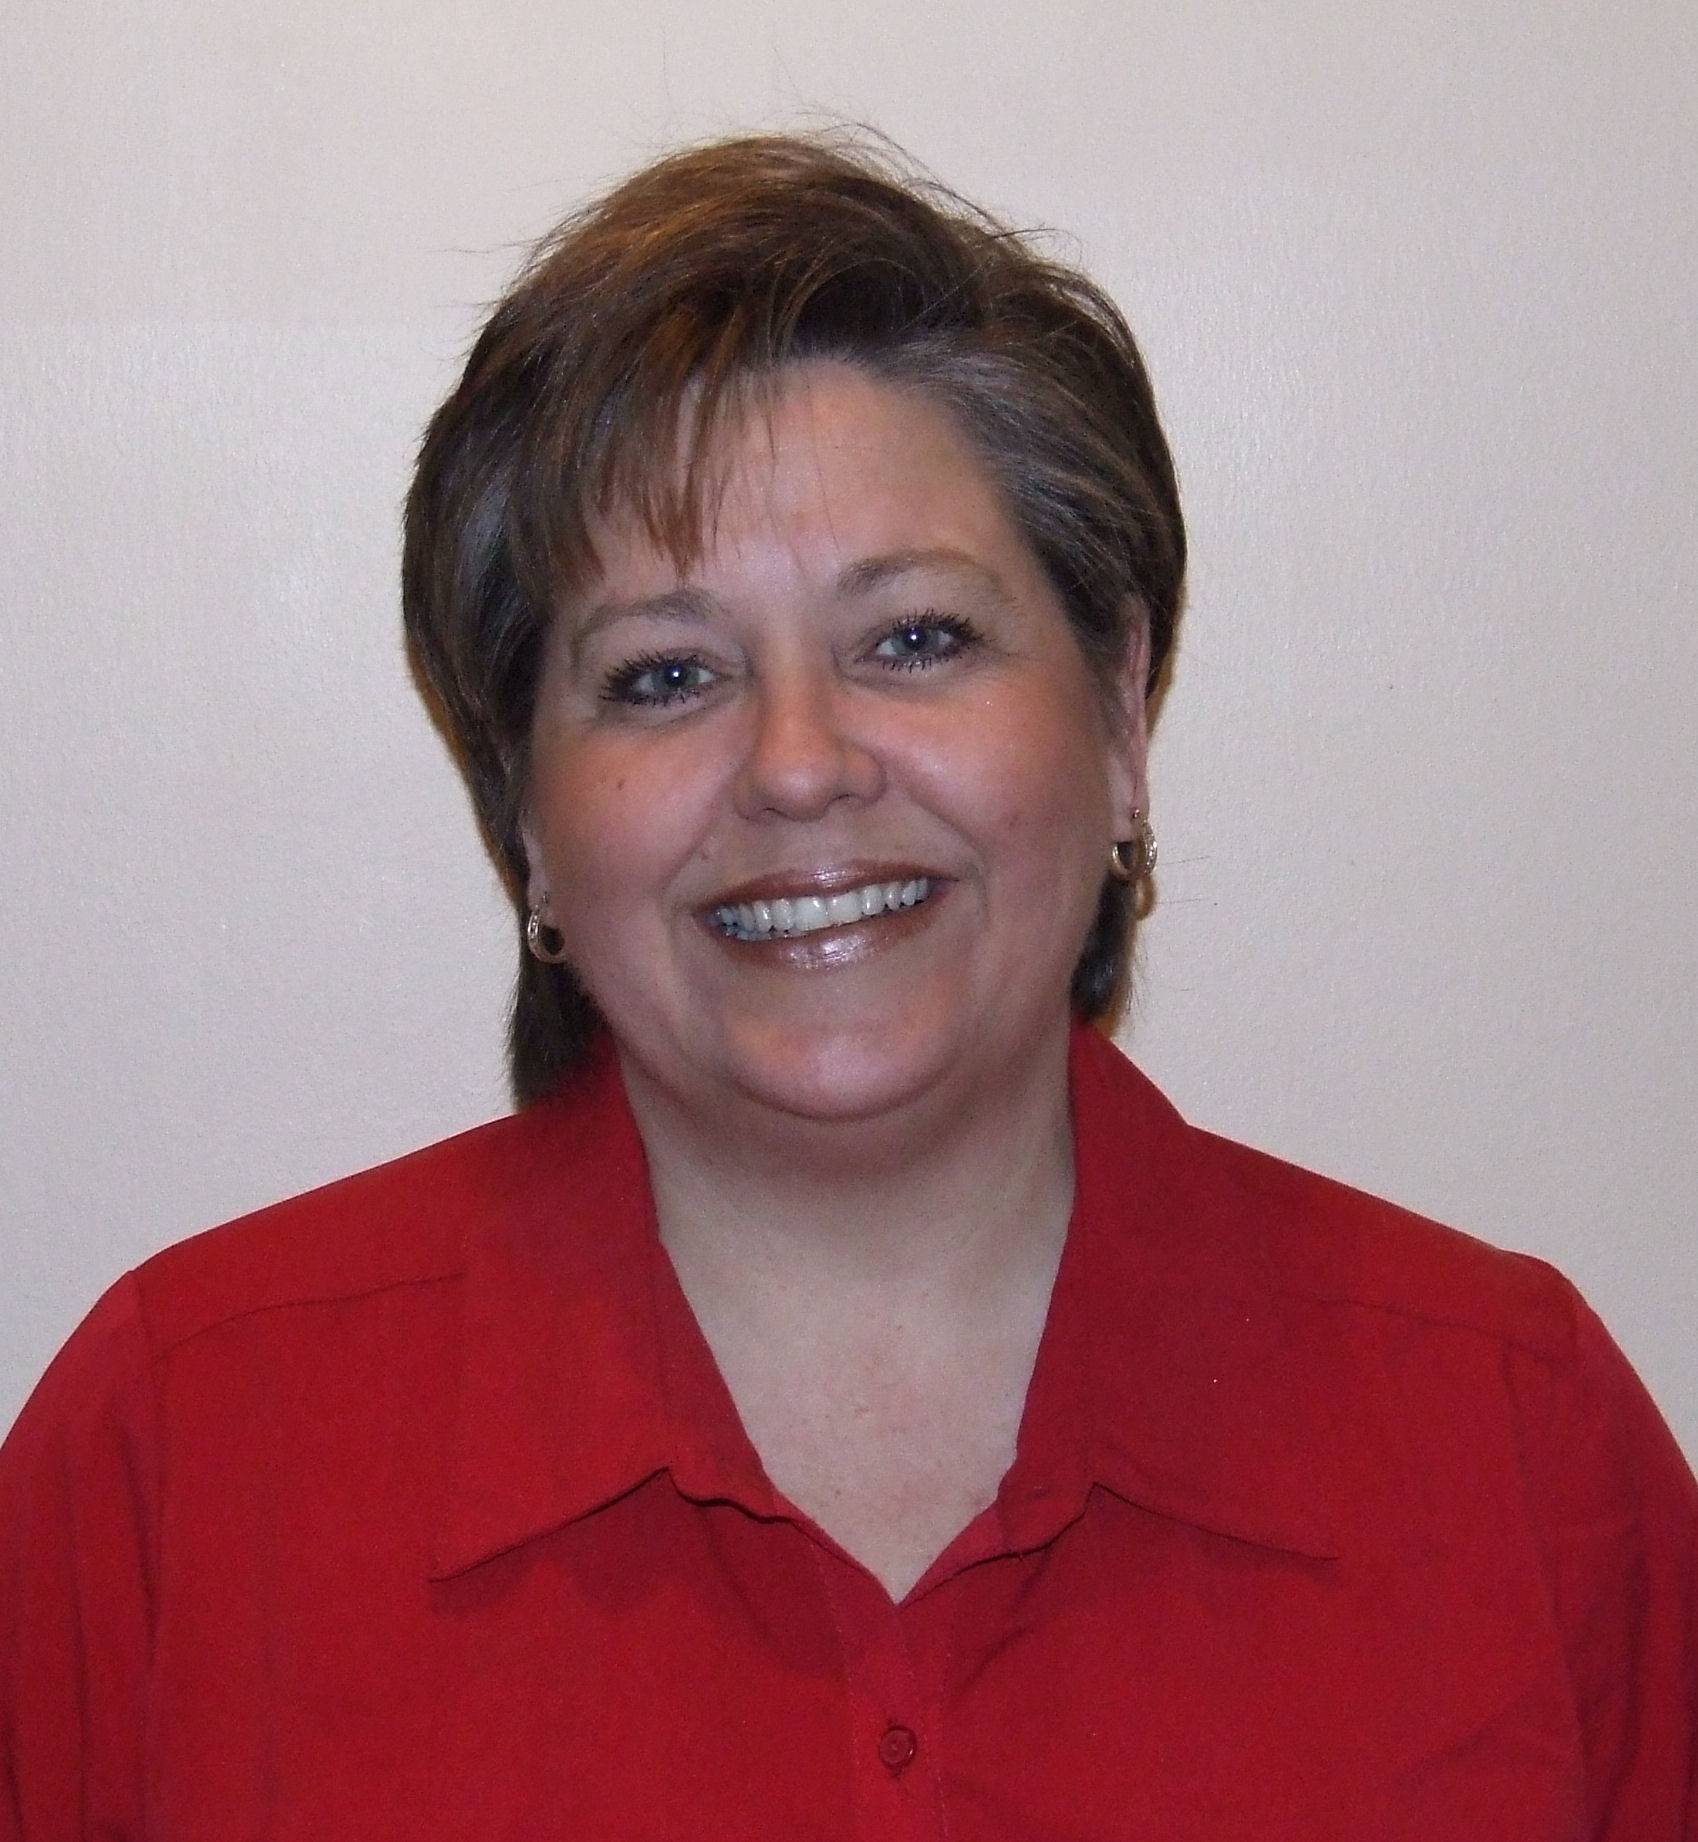 Dawn Abernathy, running for Mundelein Village Board (4-year Terms)